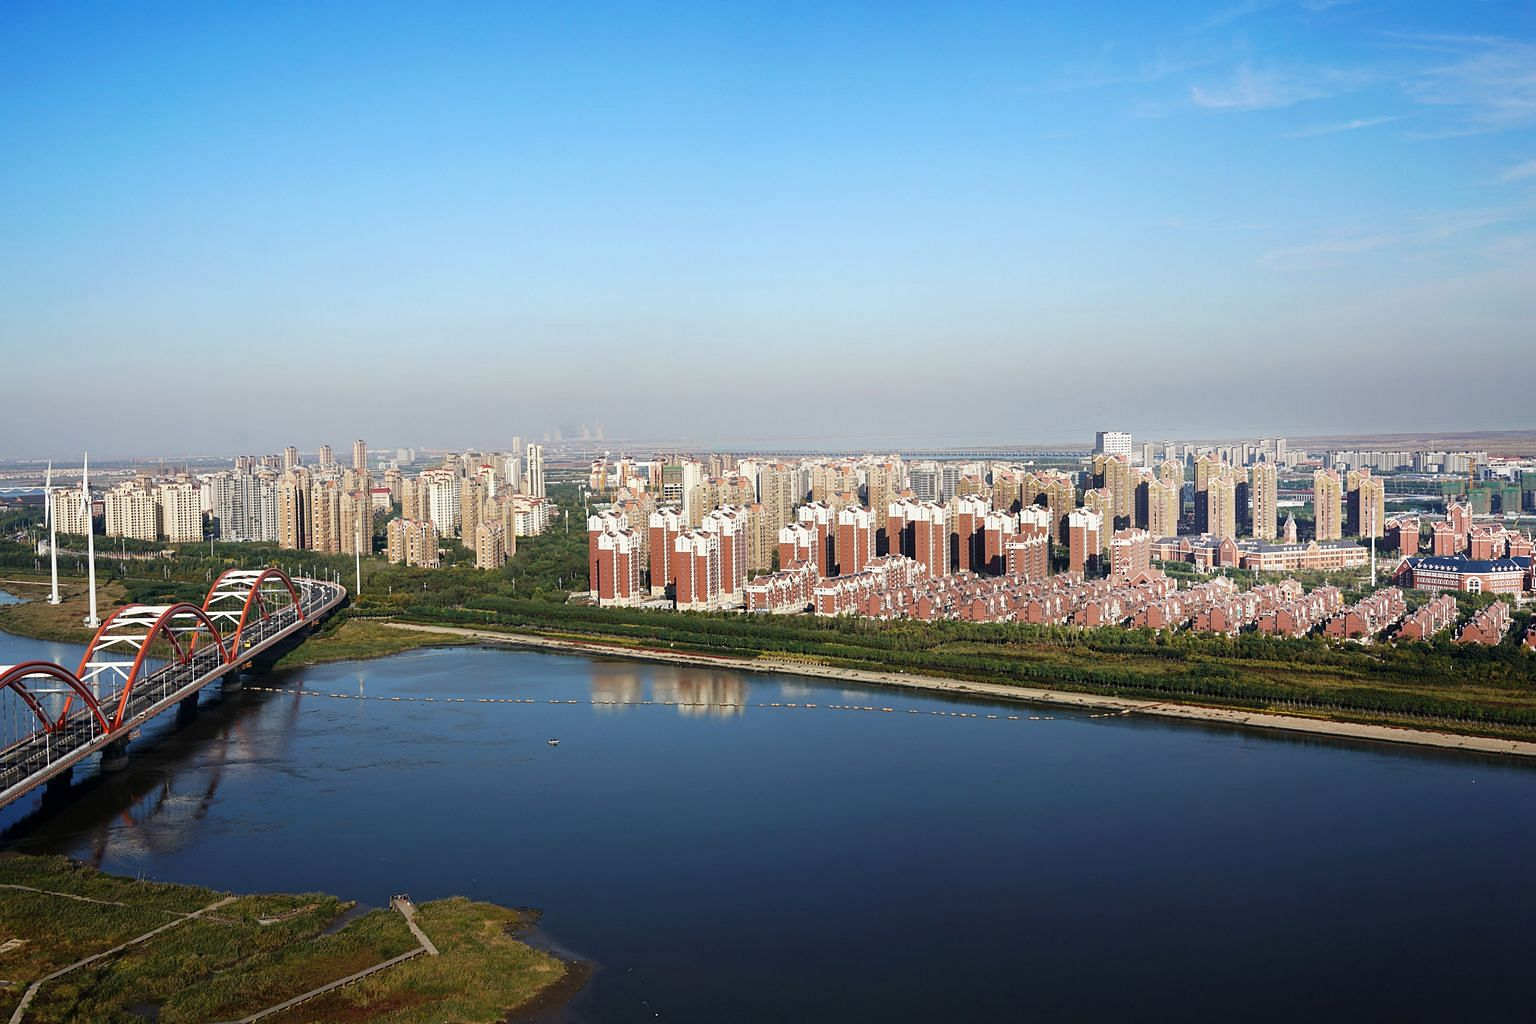 The Keppel conglomerate's involvement in the Tianjin Eco-City (above) and CapitaLand's role in Guangzhou's Datansha island project (left) have been cited as overseas examples of local industry players' track records, as they eye a master- developer m